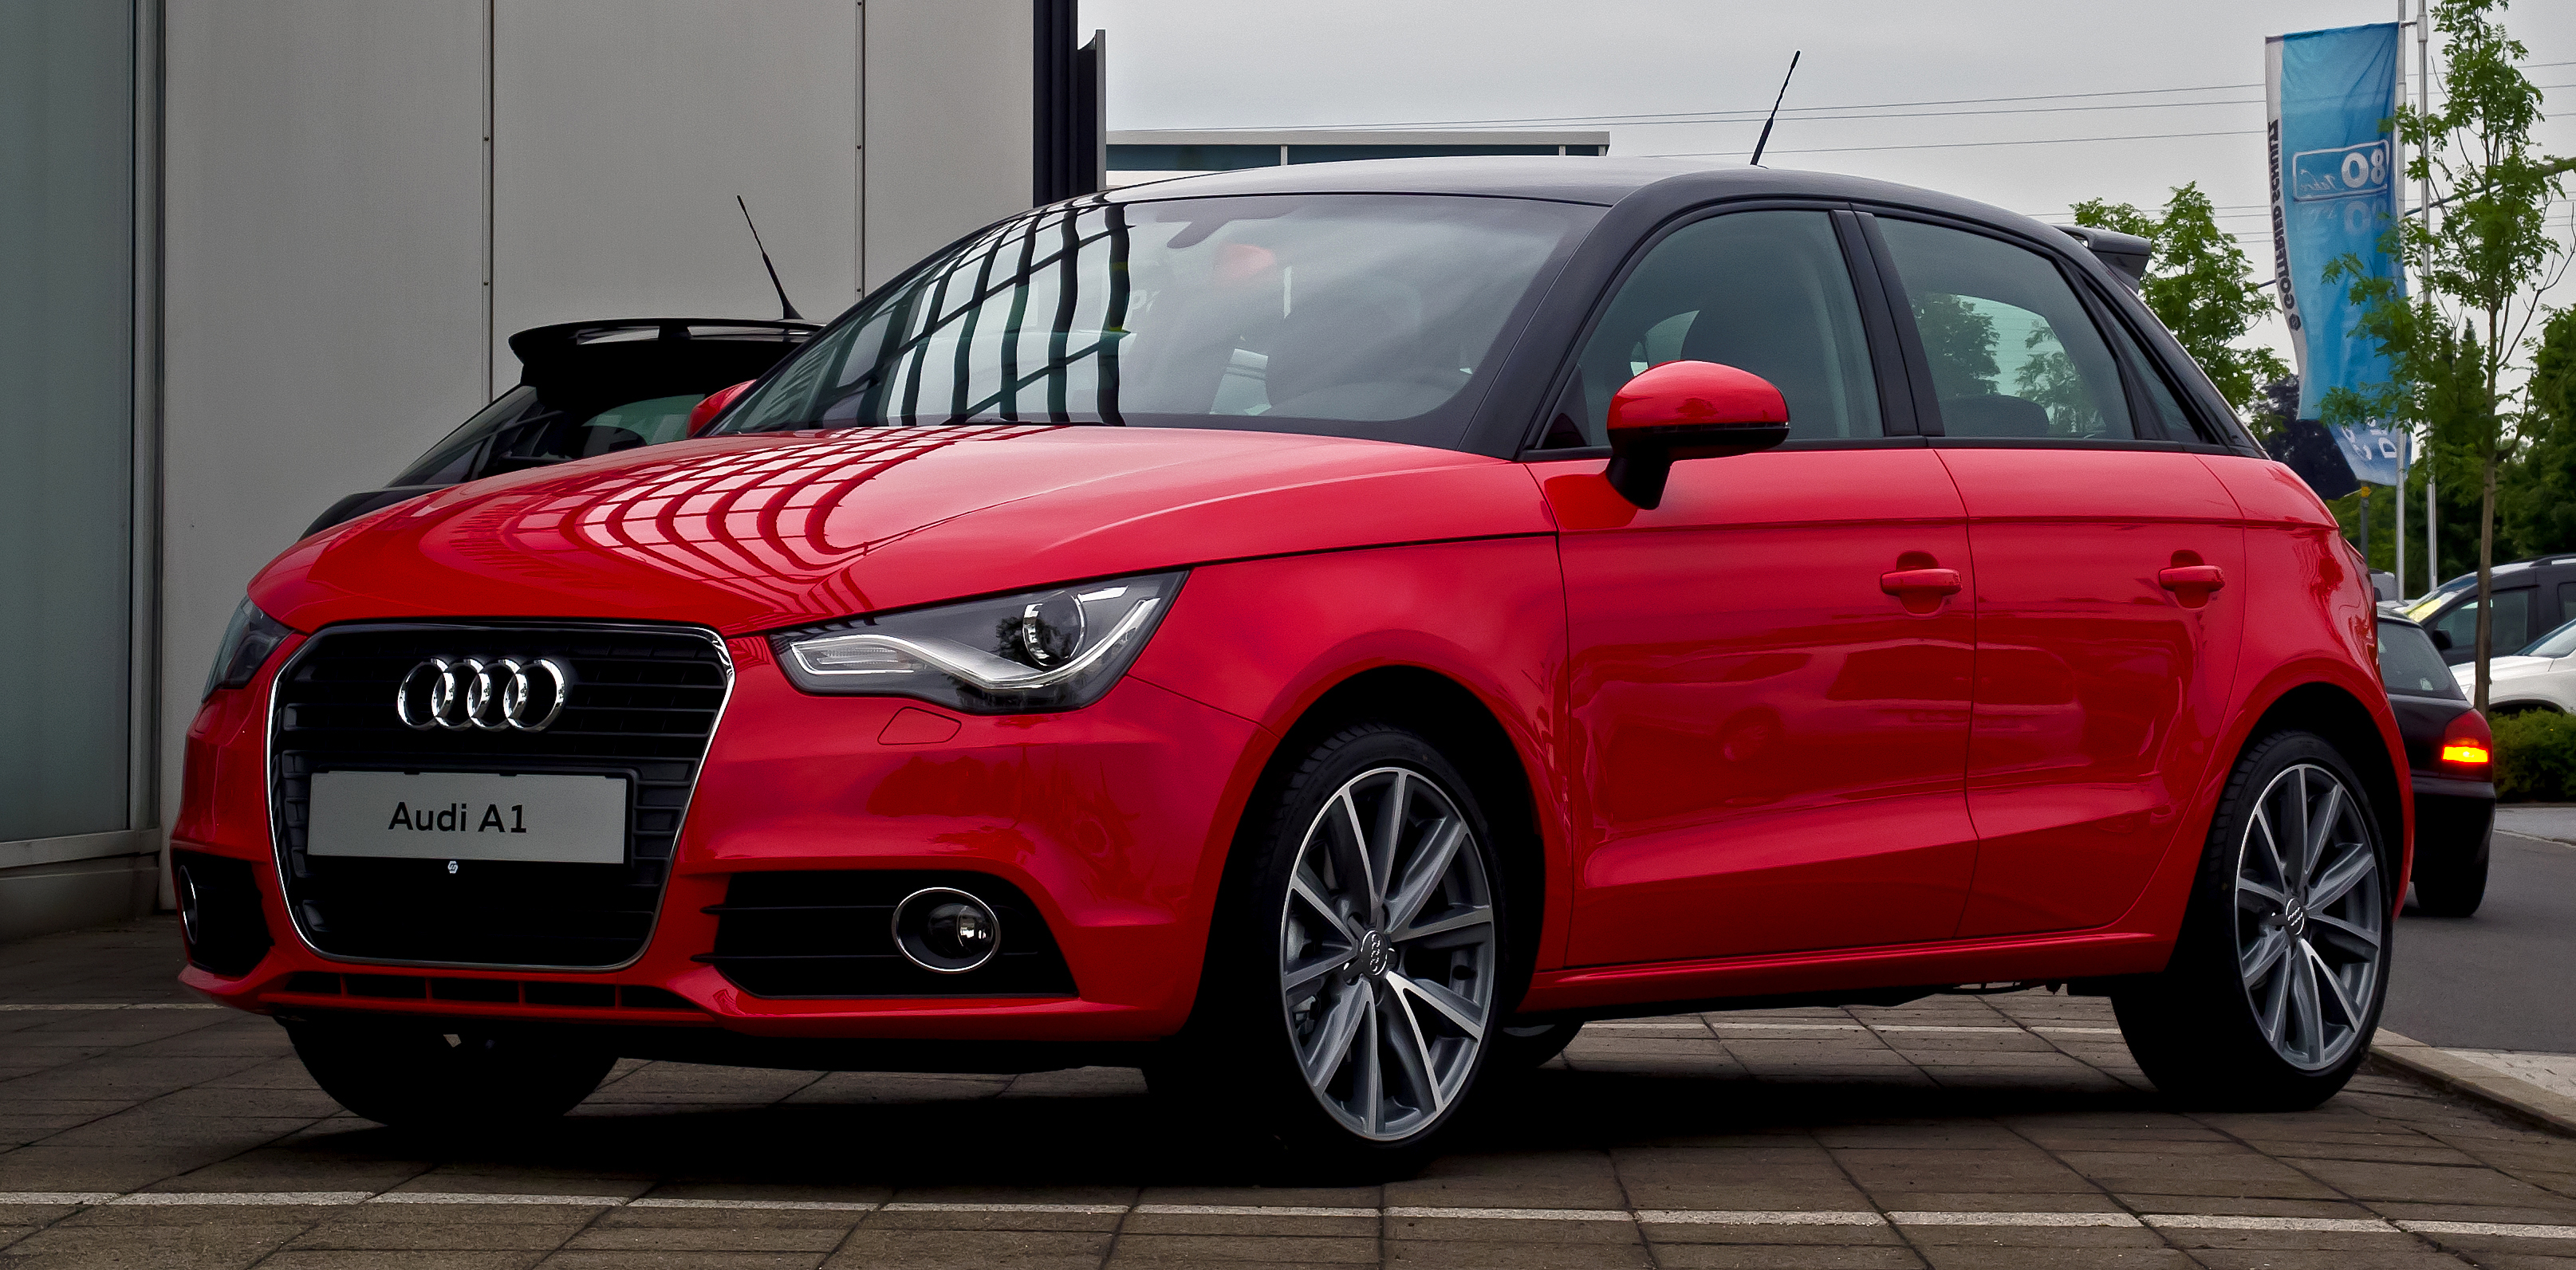 datei audi a1 sportback 1 4 tfsi ambition frontansicht 13 juni 2012 wikipedia. Black Bedroom Furniture Sets. Home Design Ideas